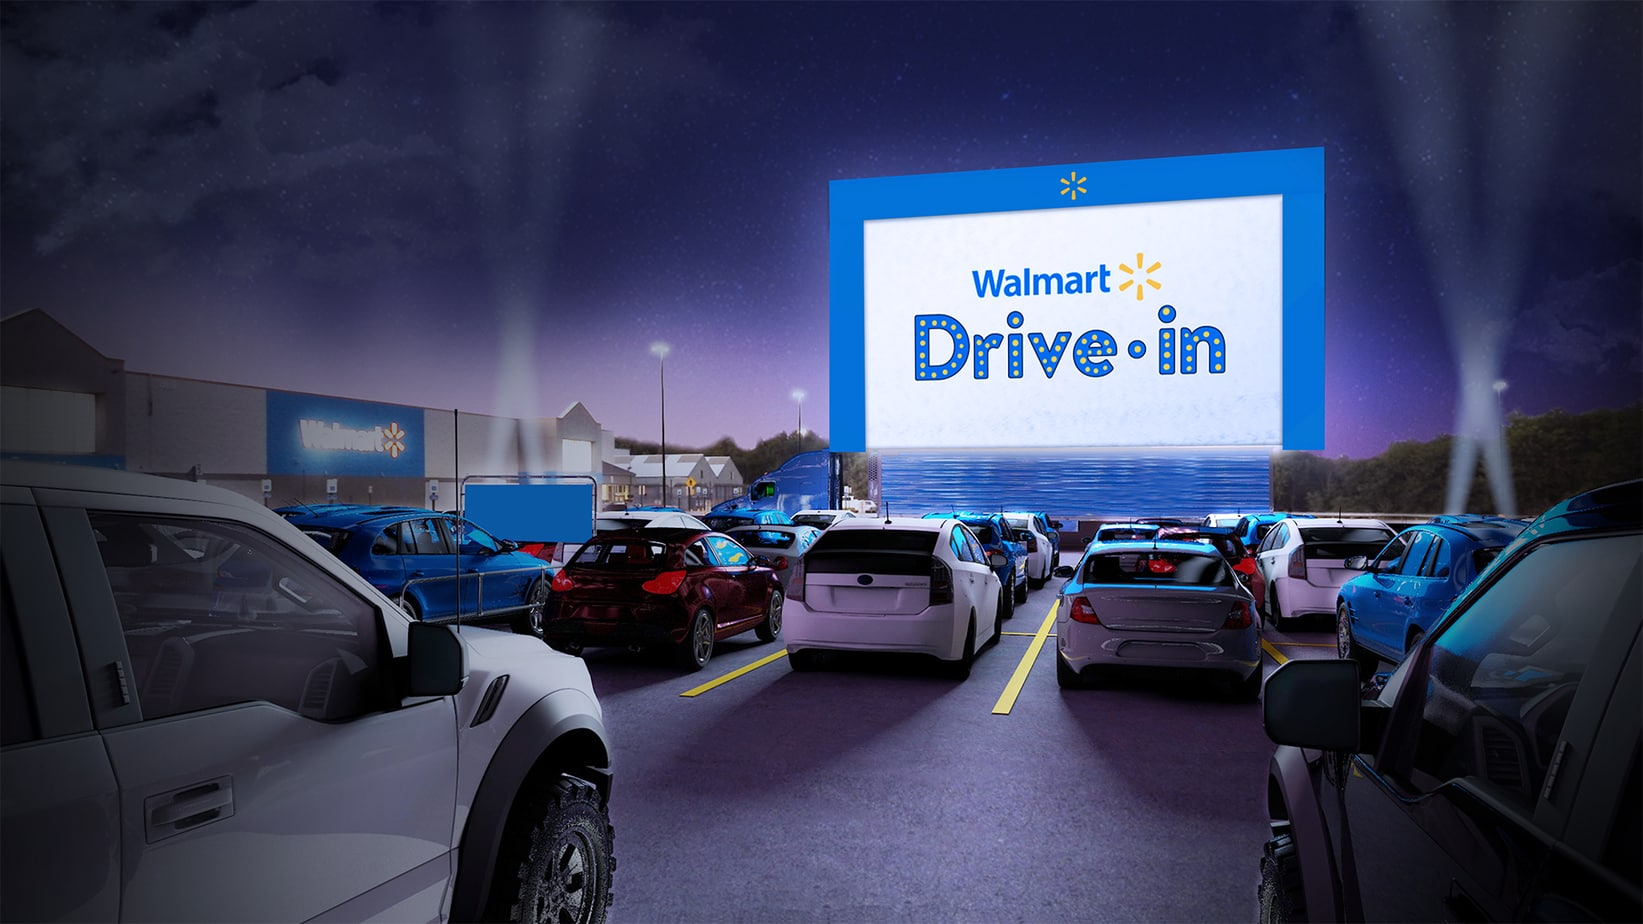 Walmart Turning Parking Lots into Drive-in Movie Theaters